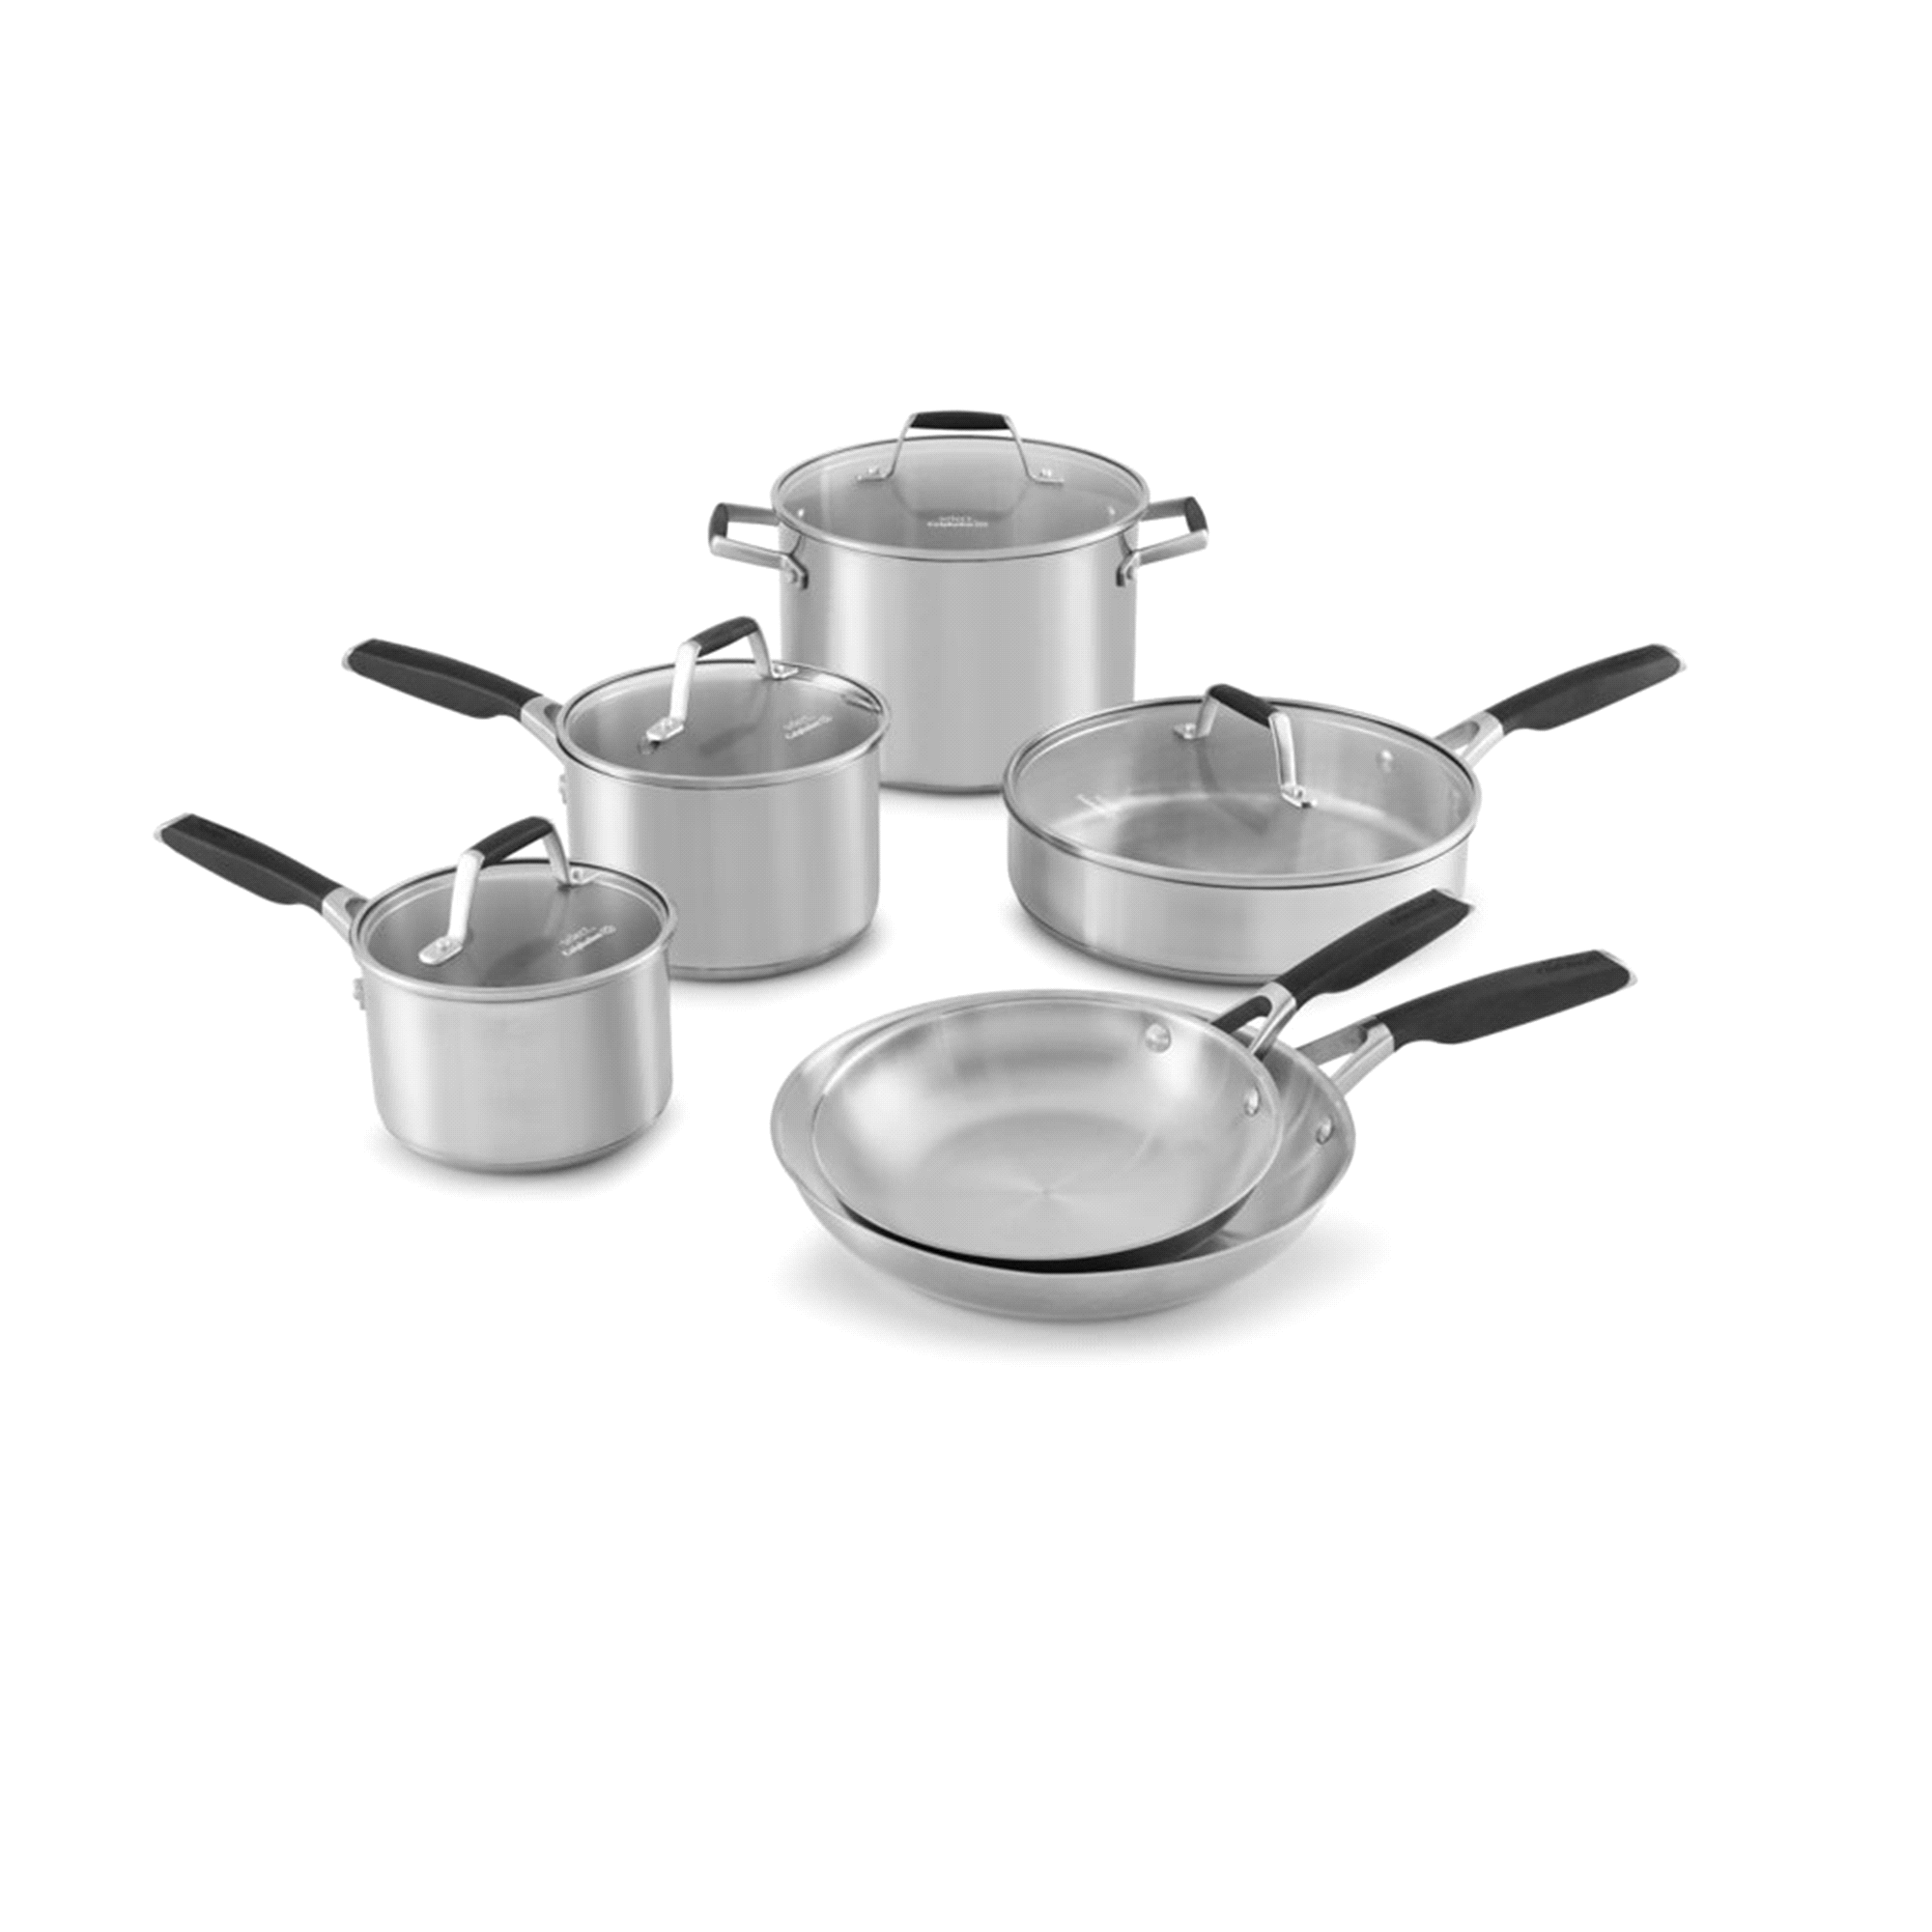 Select by Calphalon Stainless Steel 10 Piece Cookware Set | Meijer.com